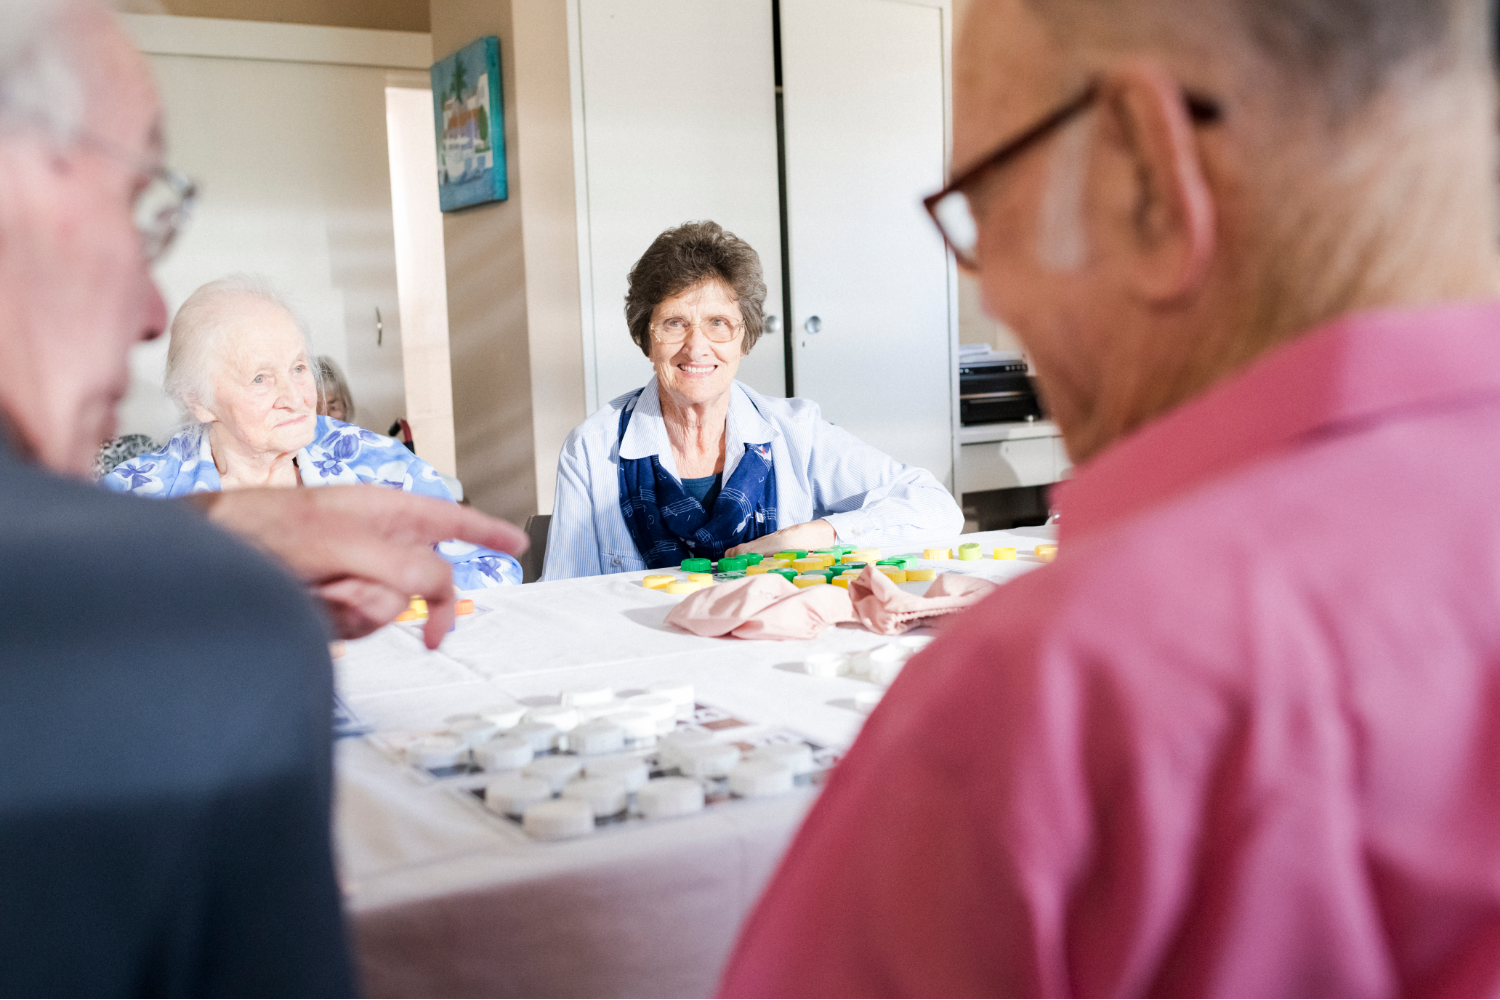 What Benefits Do Residential Communities Have for Older Adults?